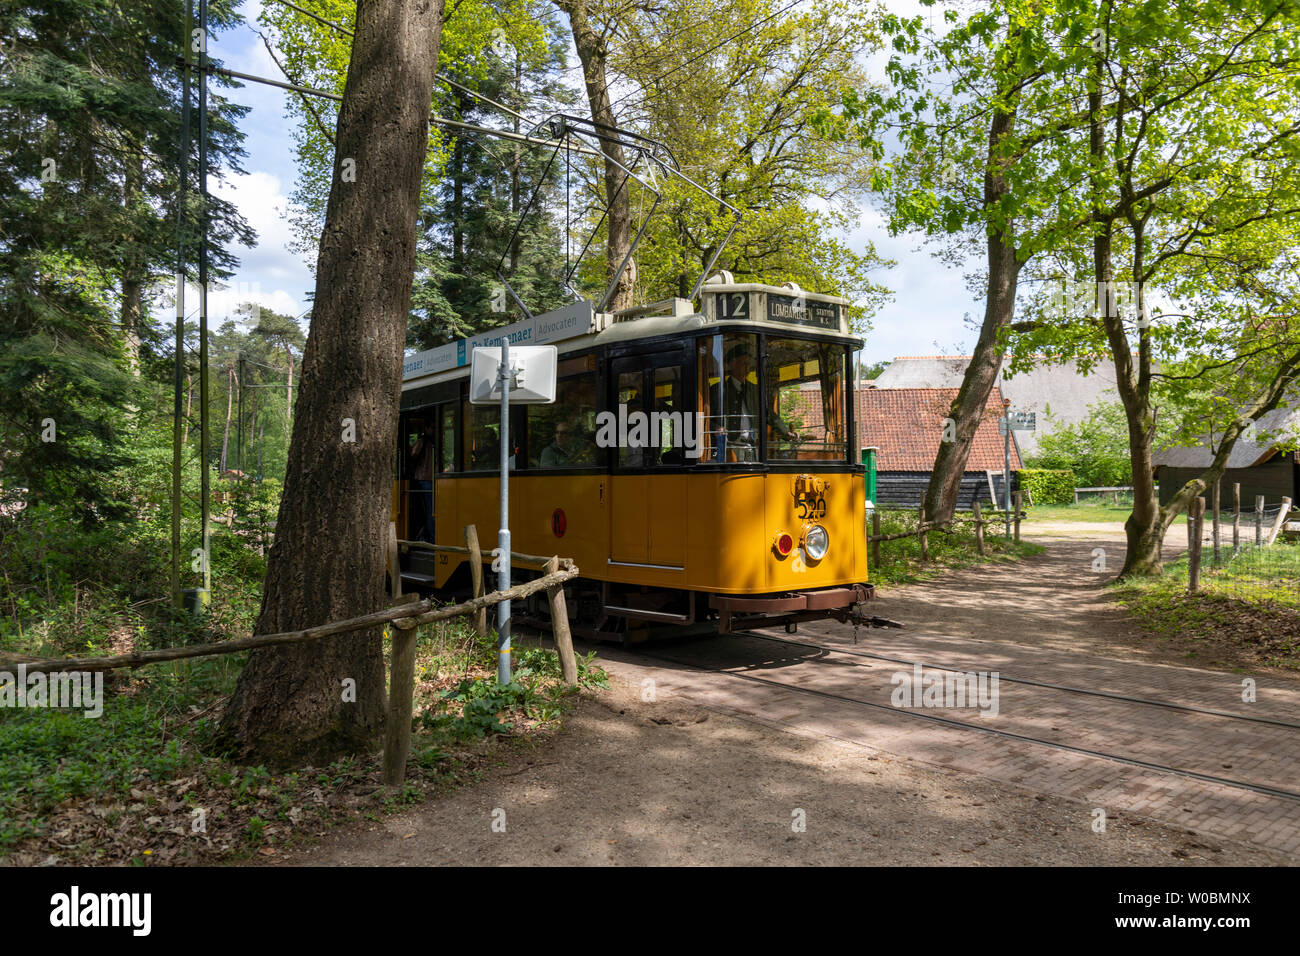 A vintage Tram running through Holland's open air museum.  A lovely day out viewing the culture, architecture and livelyhoods of old Netherlands - Stock Image